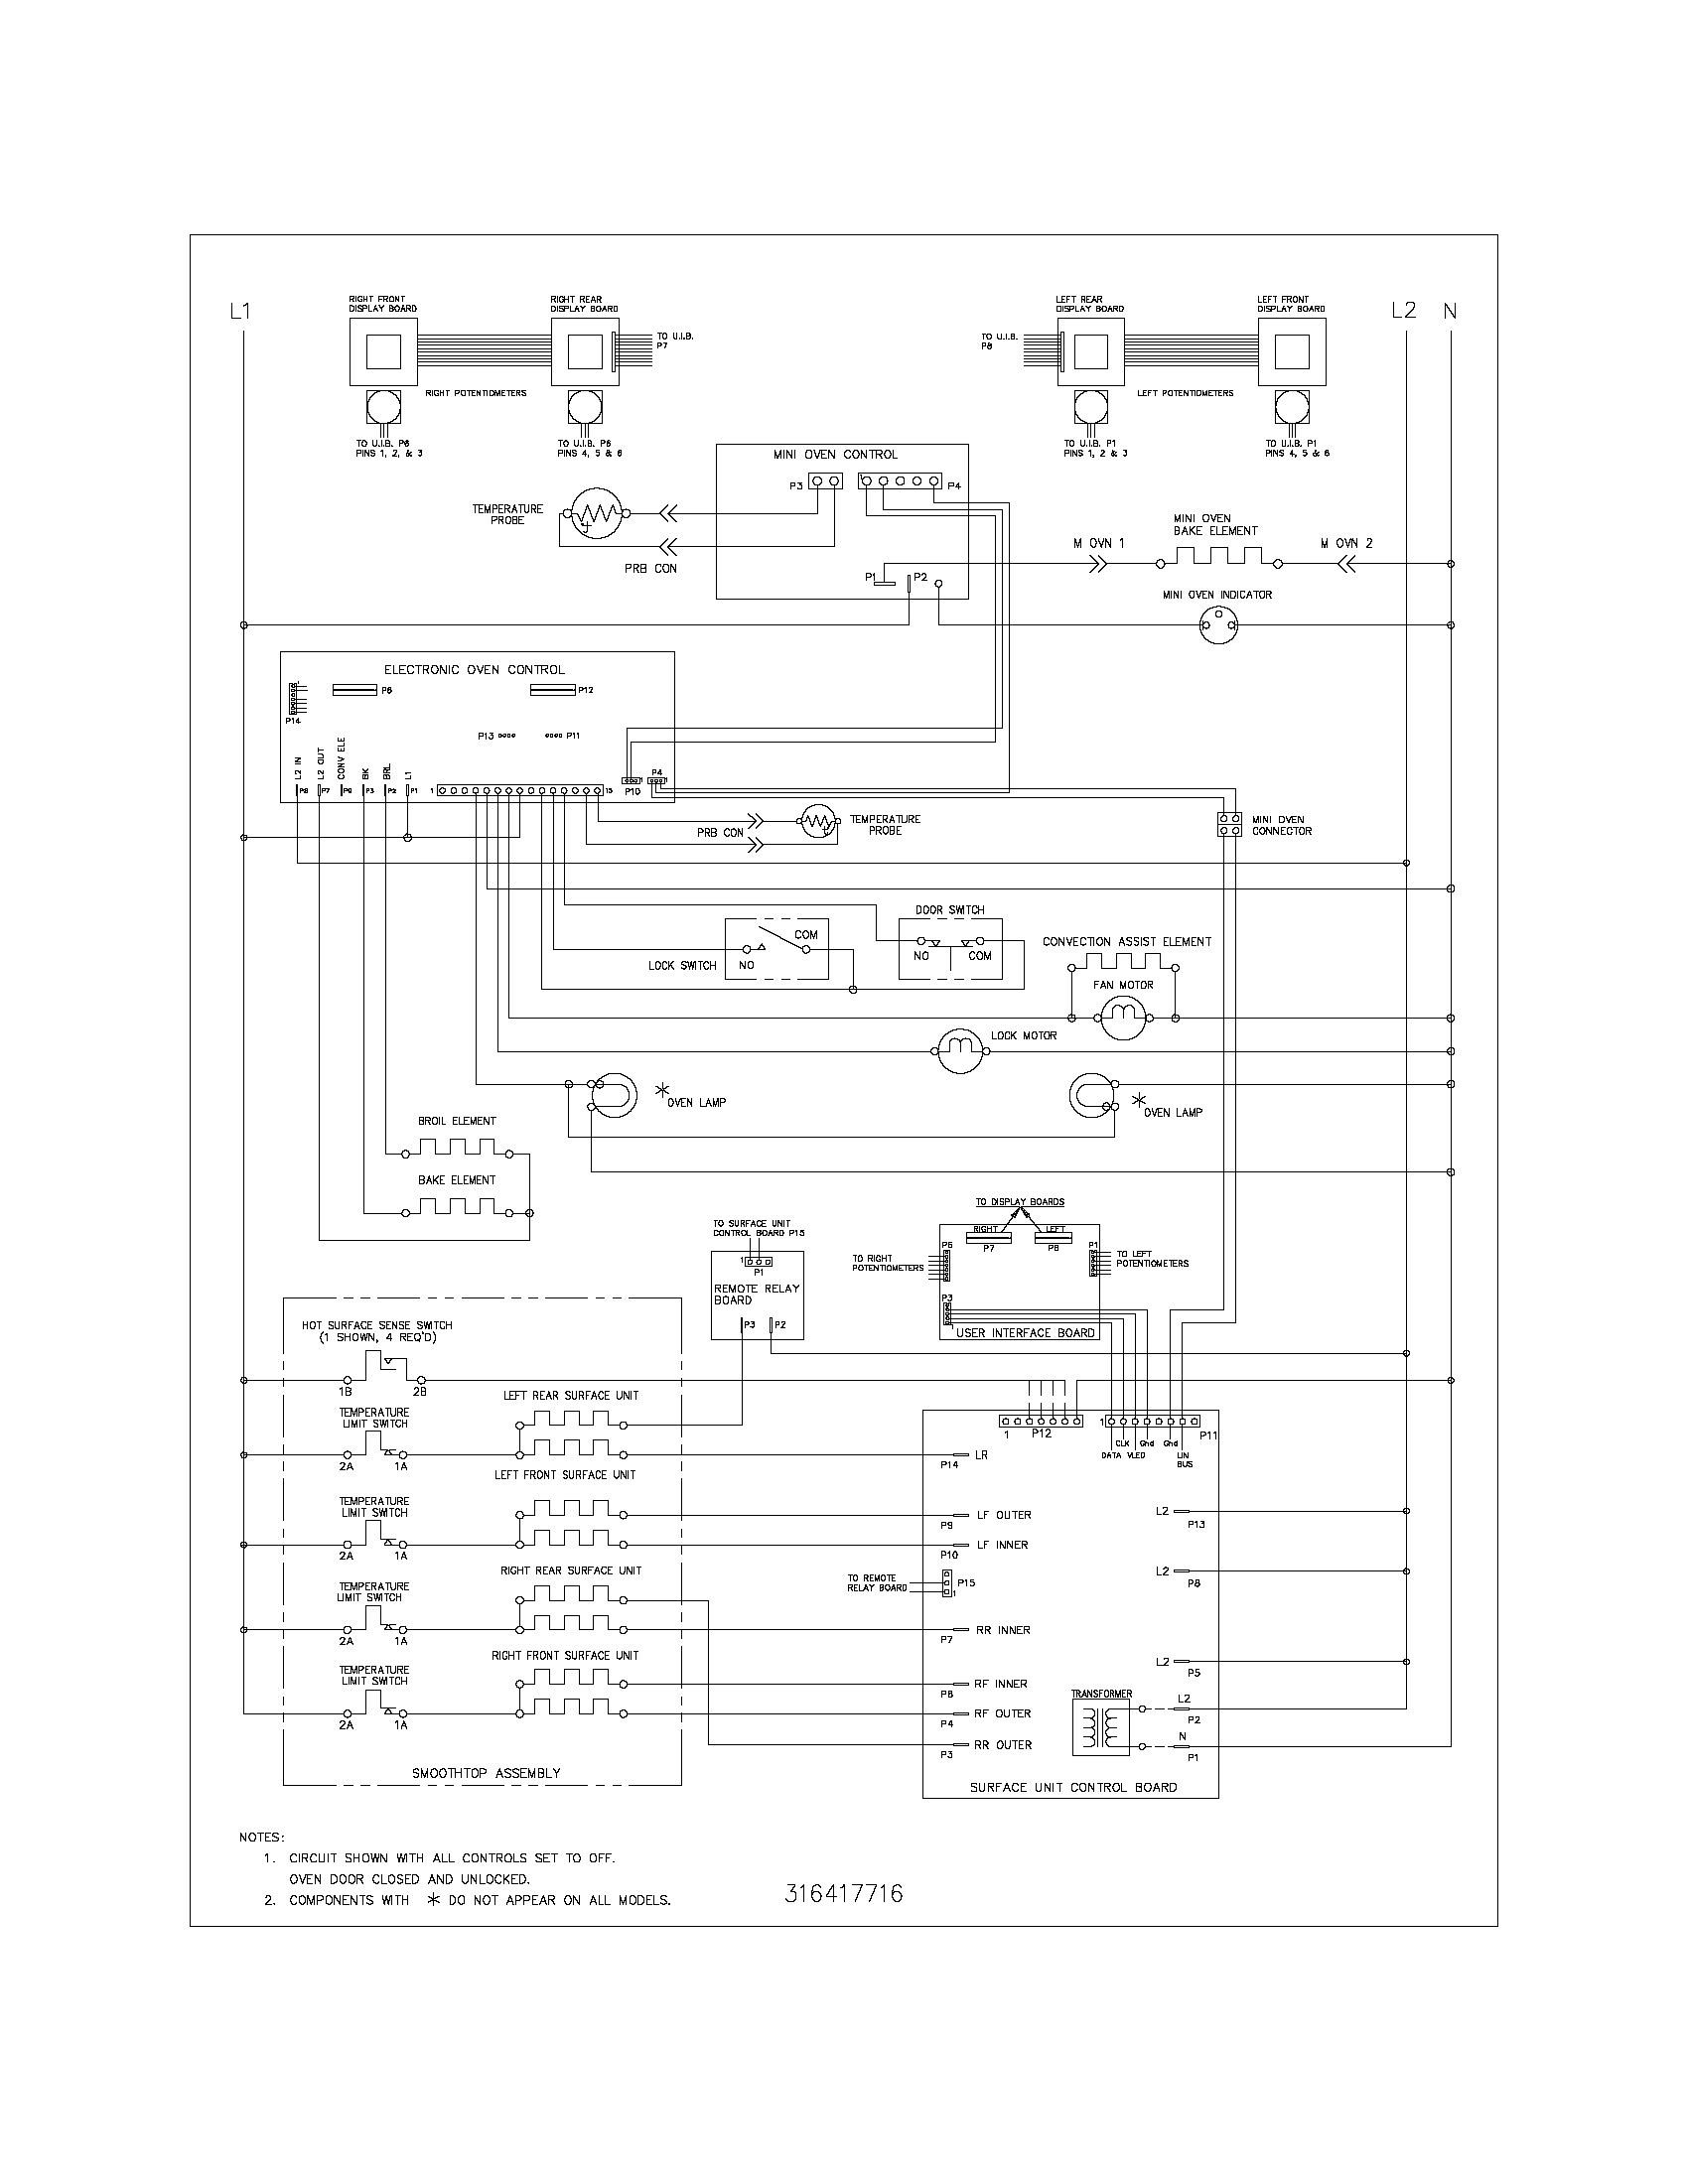 wiring schematic parts odes wiring diagram e z go wiring diagram \u2022 wiring diagrams j wiring diagram for electric fireplace at reclaimingppi.co